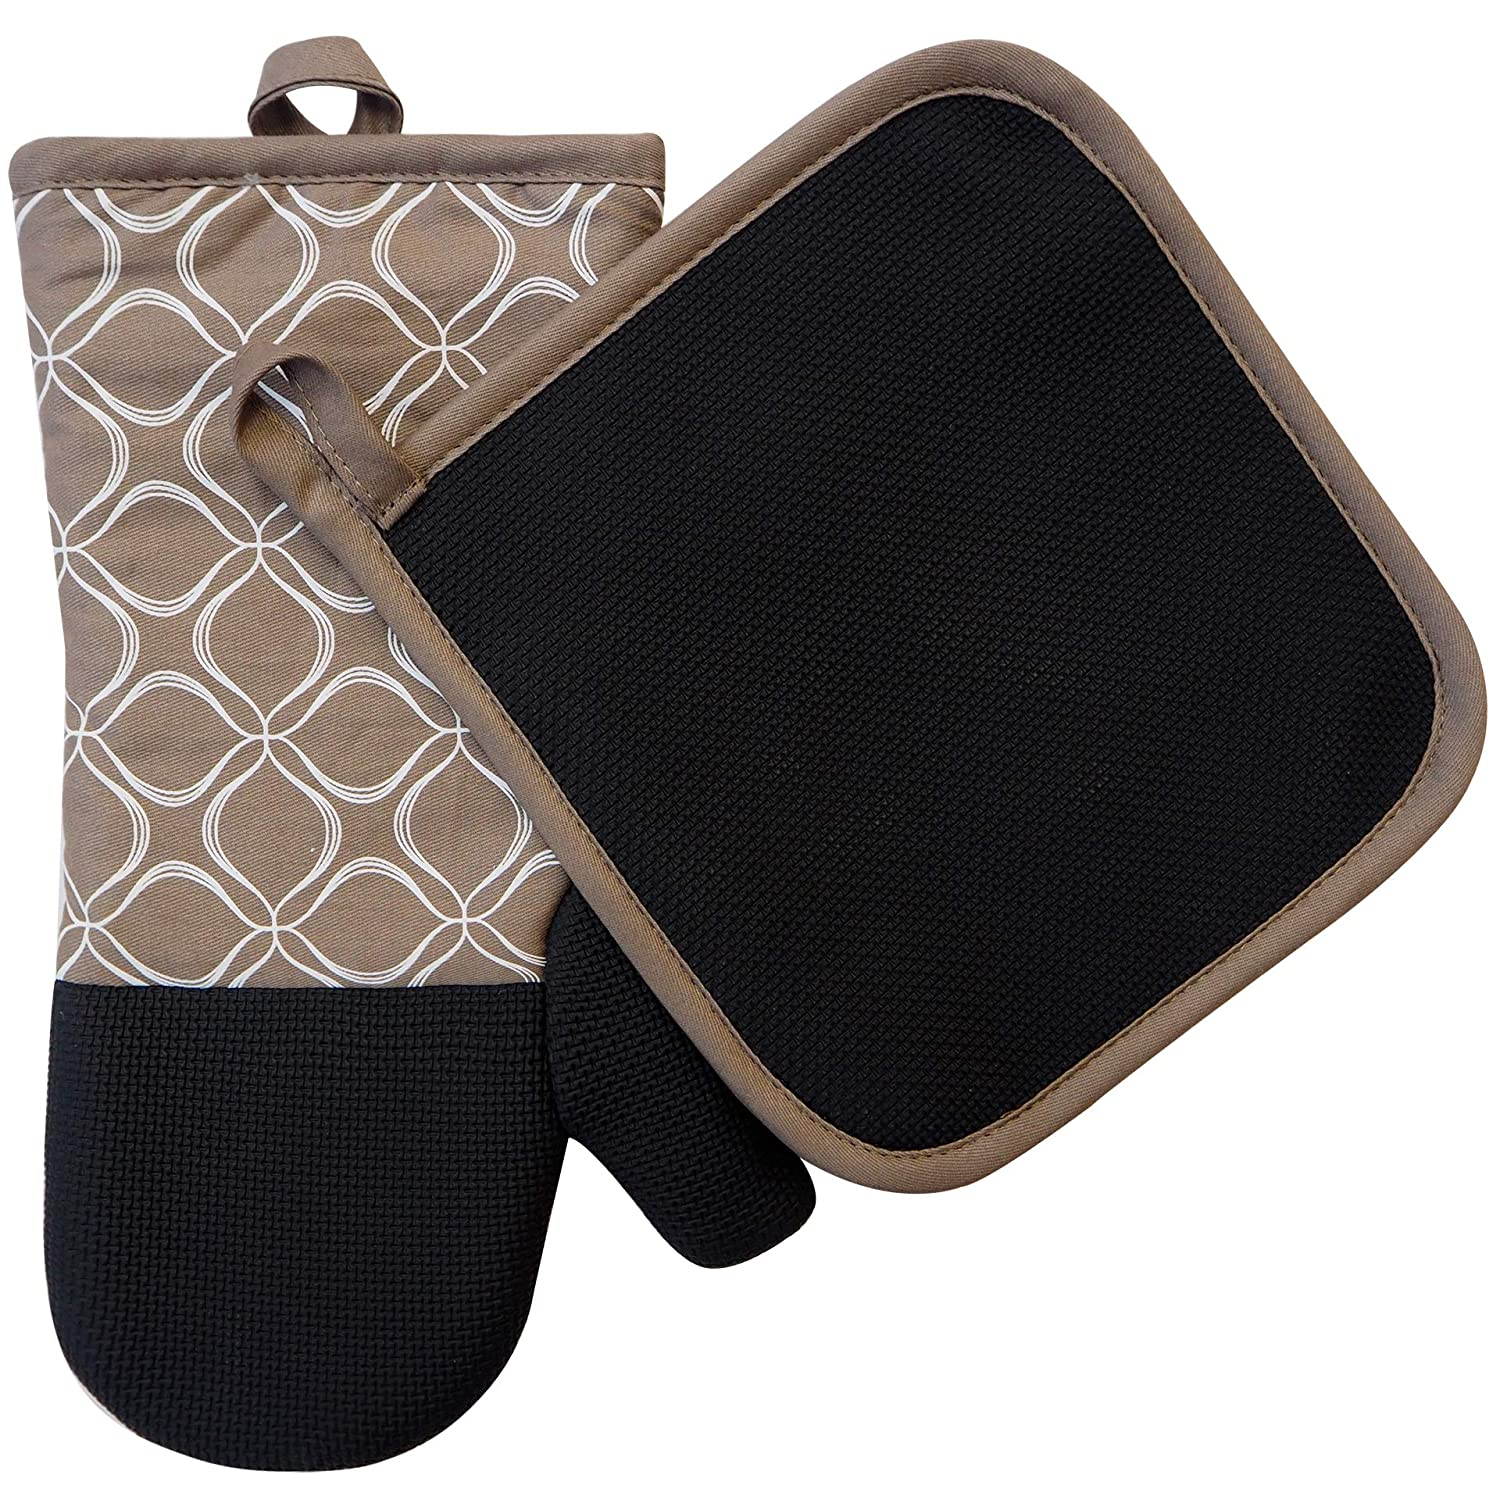 EnjoyLife Inc Shaped Oven Mitts Pot Holders Set of 2 Kitchen Set Cotton Neoprene Silicone Non-Slip Grip, Heat Resistant, Oven Gloves BBQ Cooking Baking, Grilling, Machine Washable (Tan Neoprene)